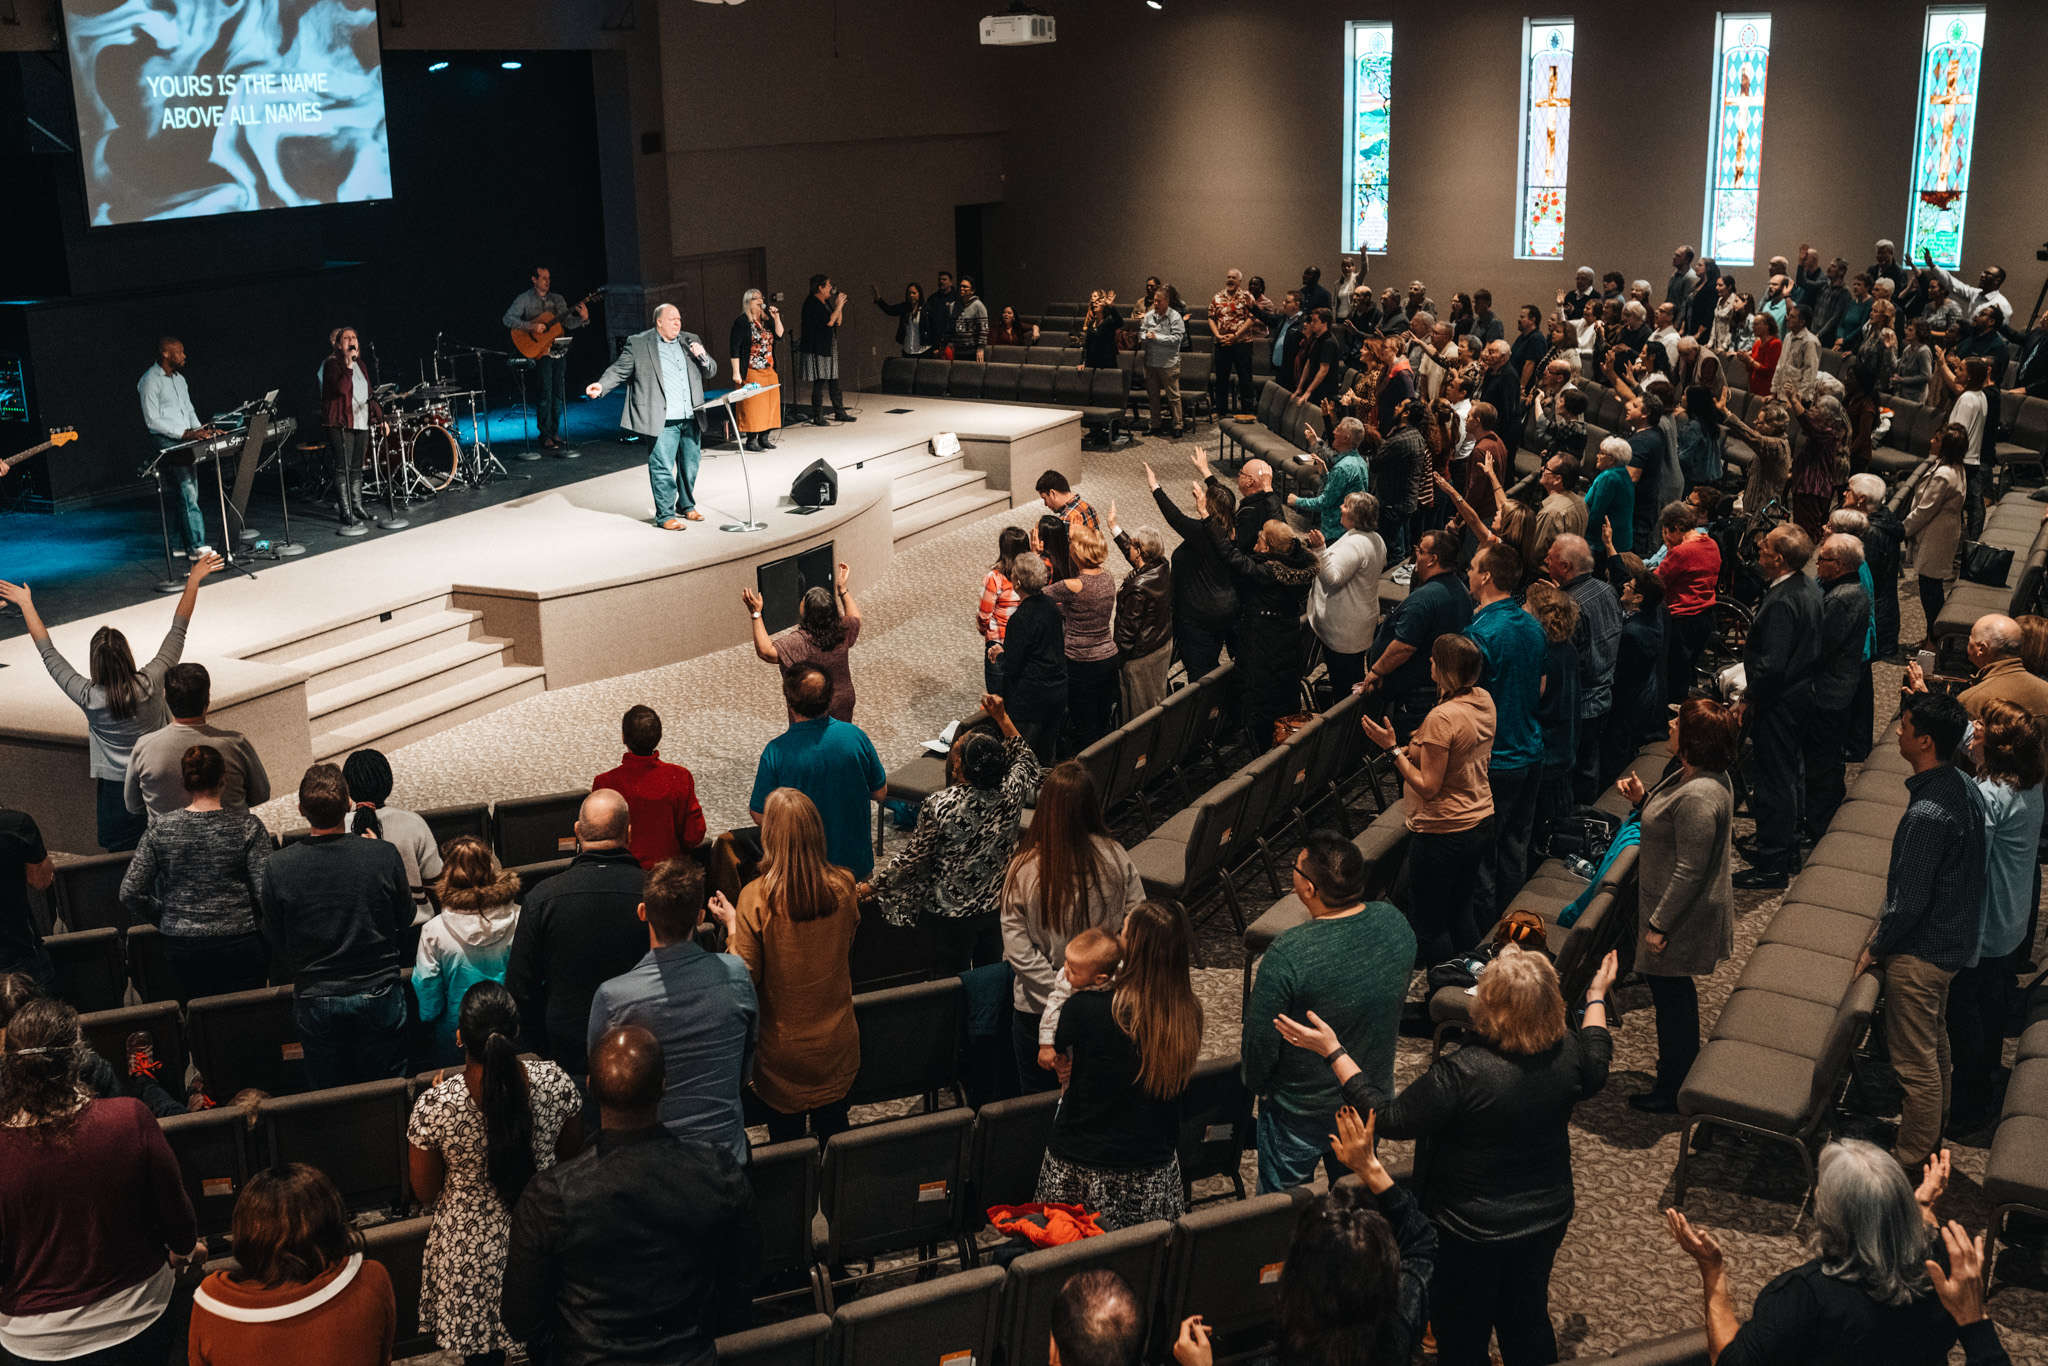 SUNDAY SERVICES - Inspiring Worship, Experiencing the presence of God, Life-Changing Teaching